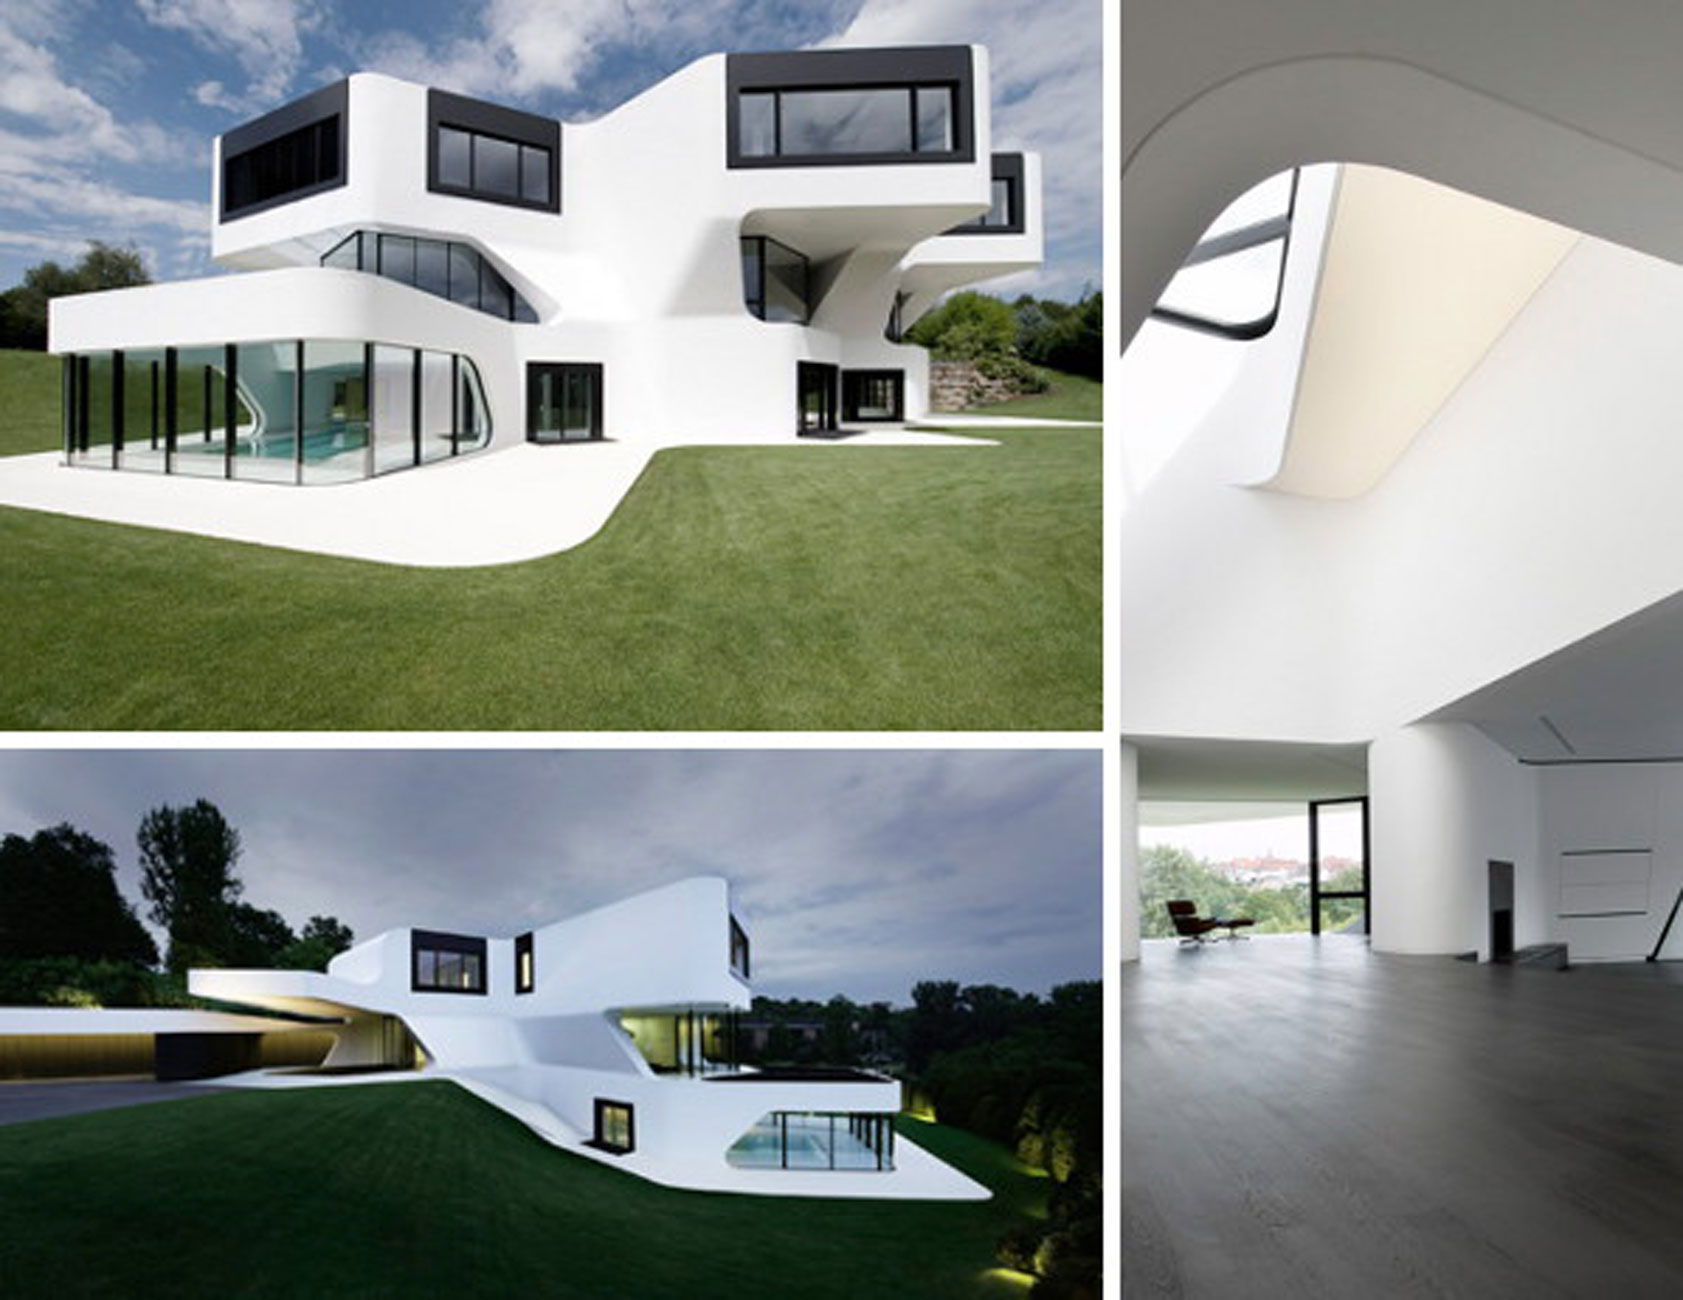 Contemporary Residence with Futuristic Design in Germany - Exterior